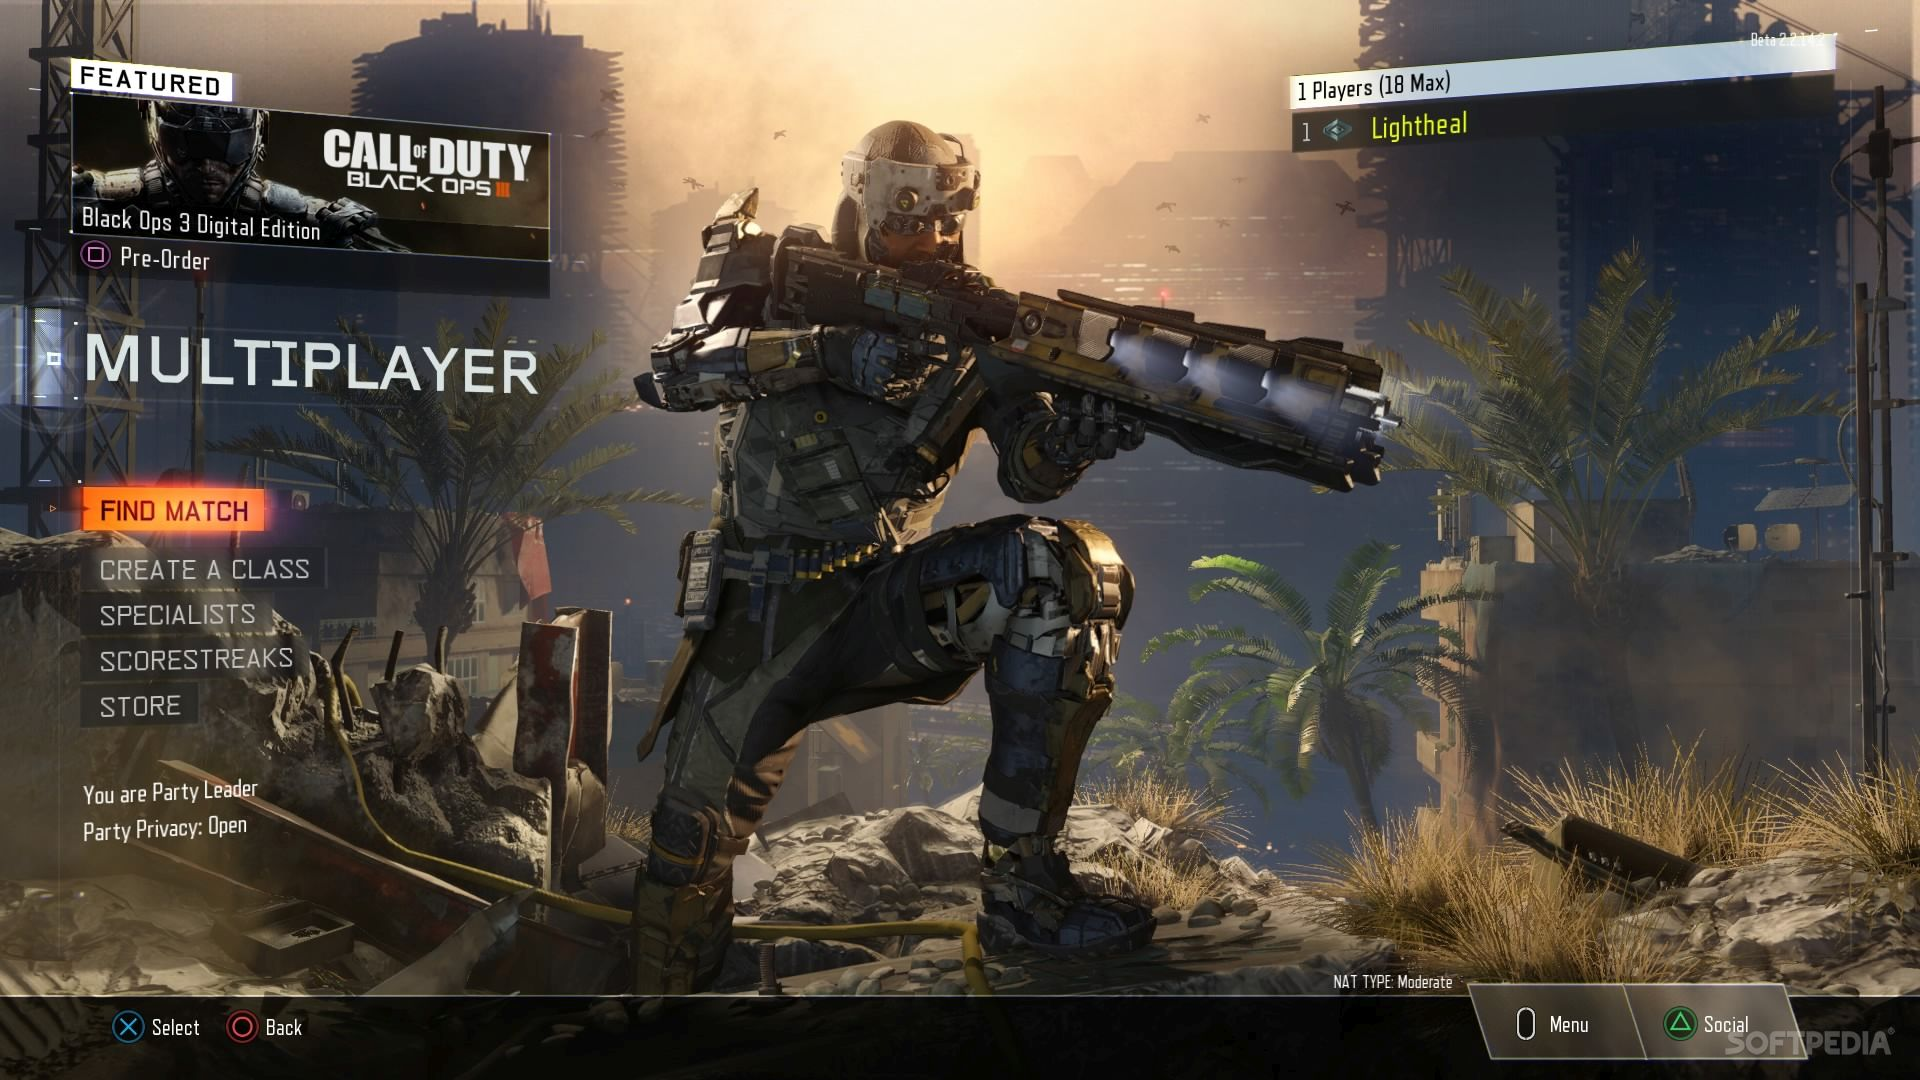 Call Of Duty Black Ops 3 Multiplayer Beta Impressions